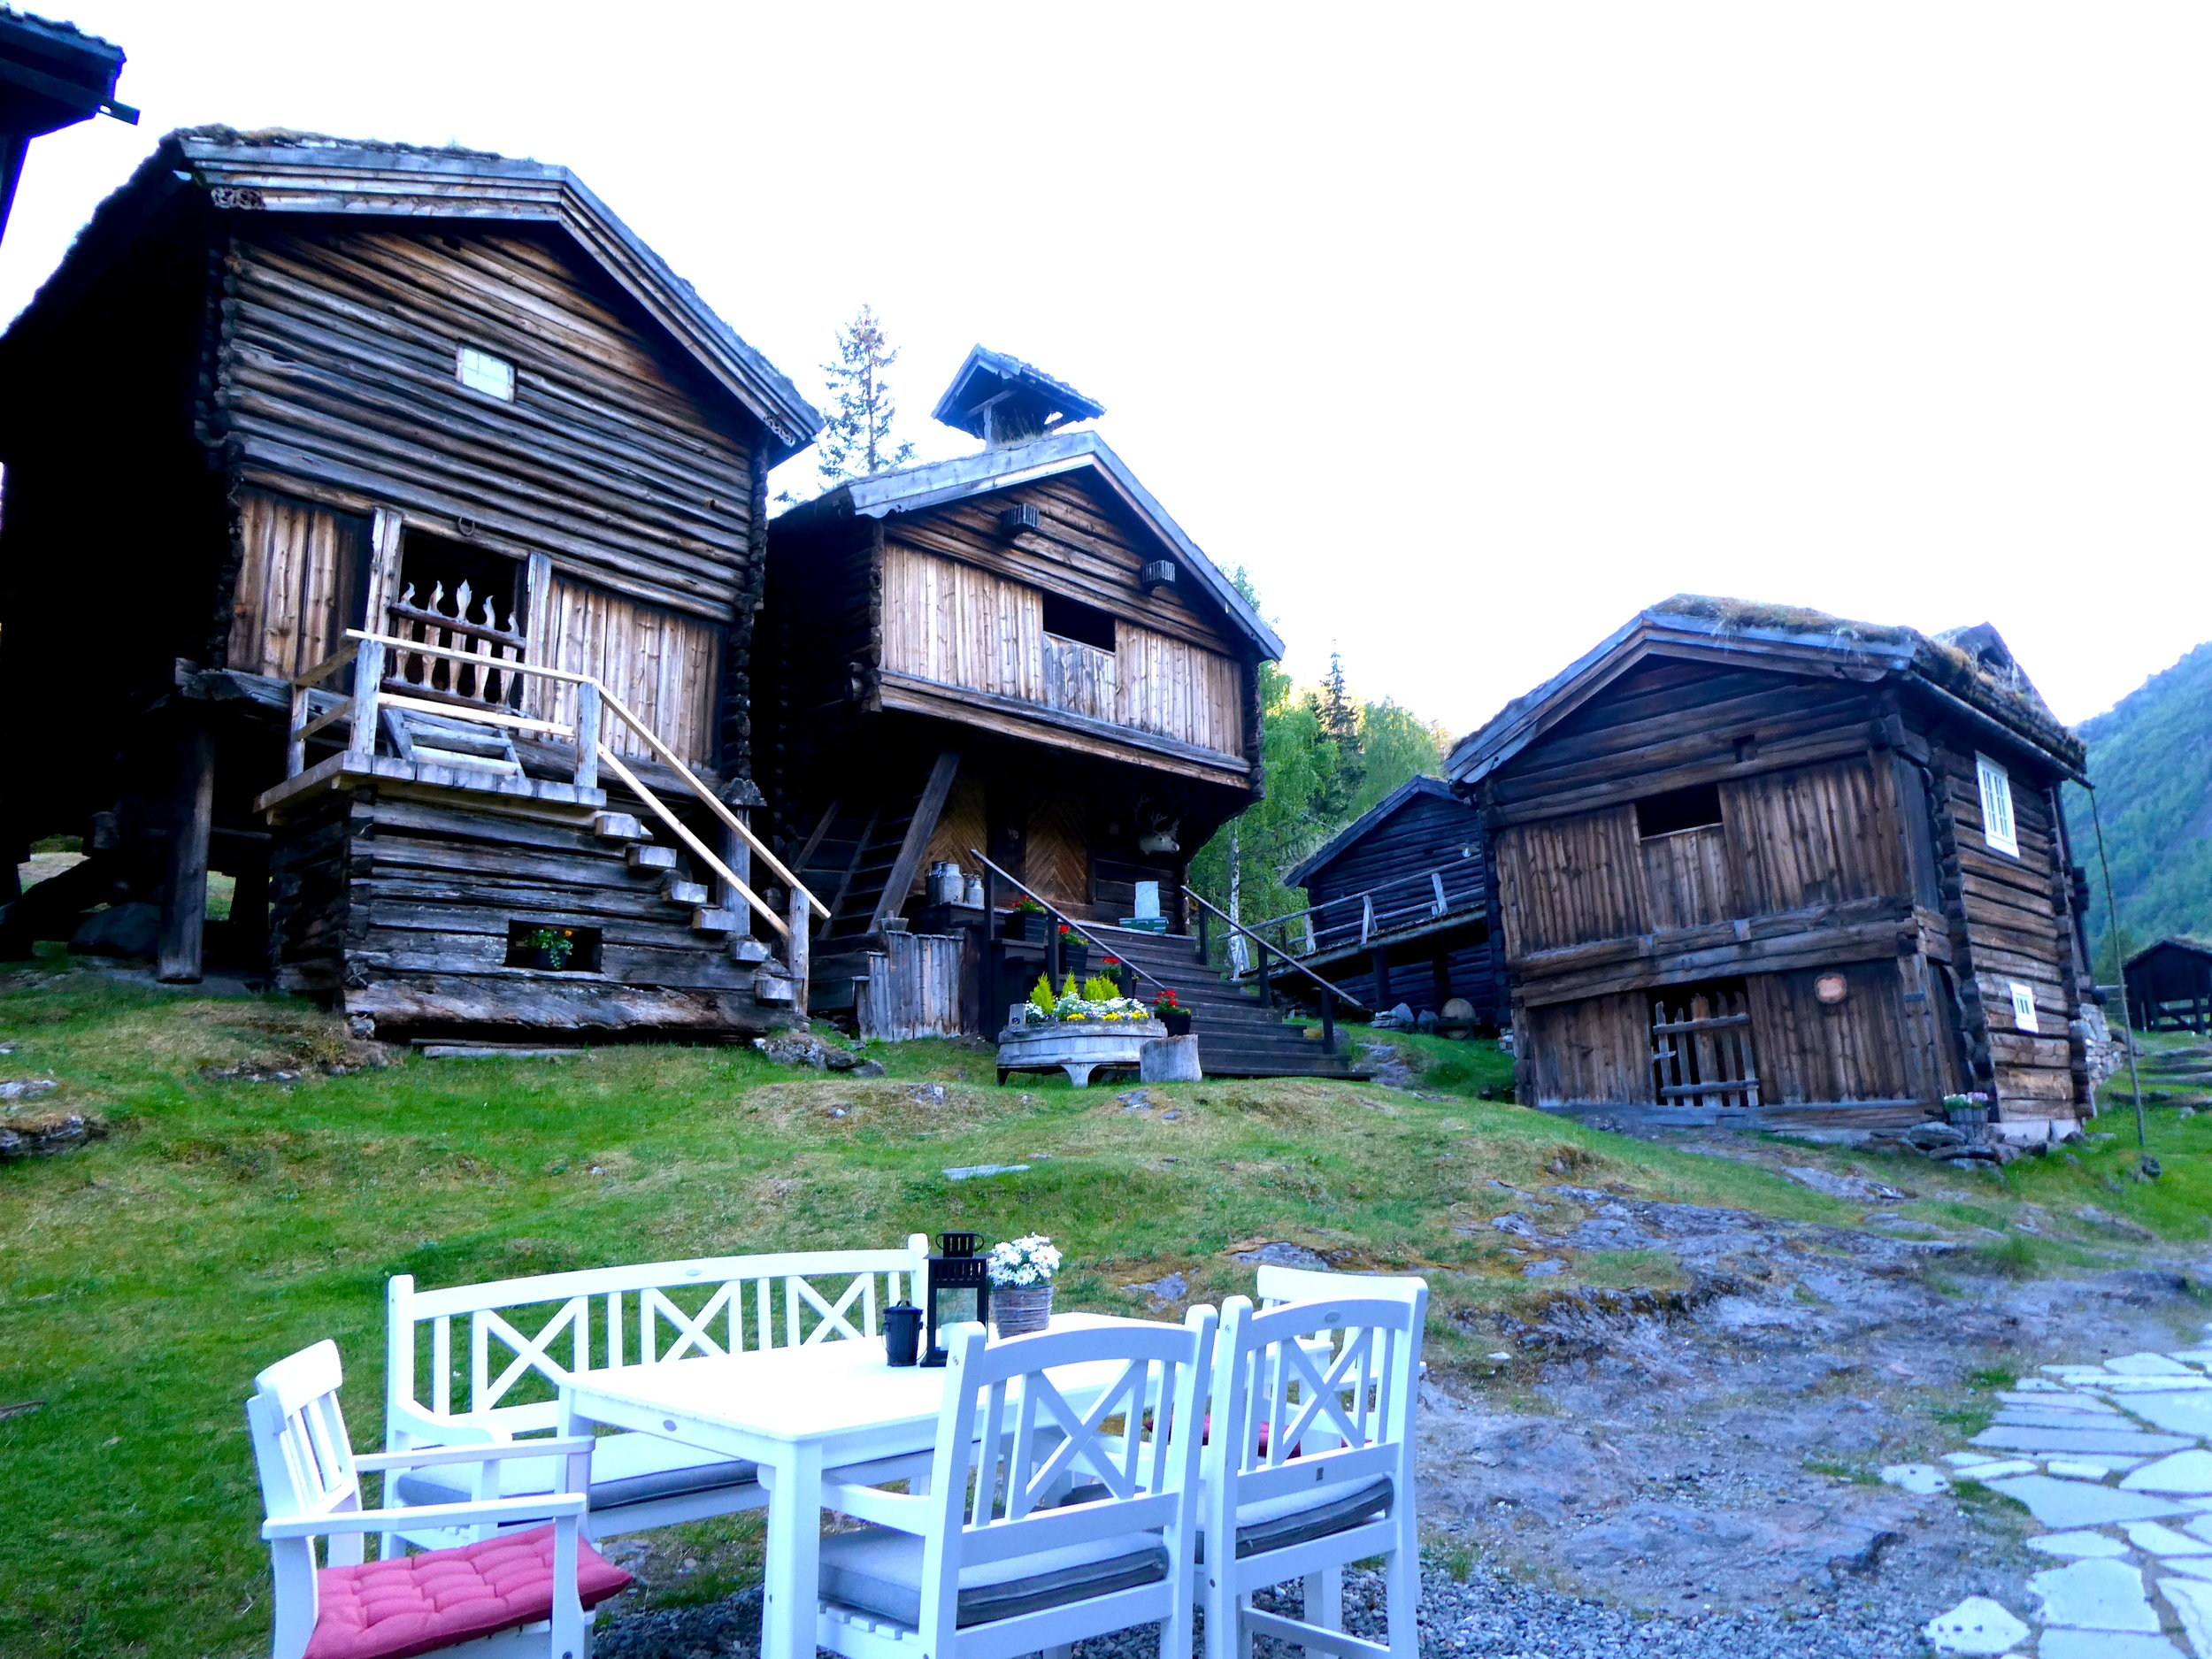 Overnight stay in a stable at the  Røisheim Hotel . This is actually one of two historic hotels we stayed at in Norway.